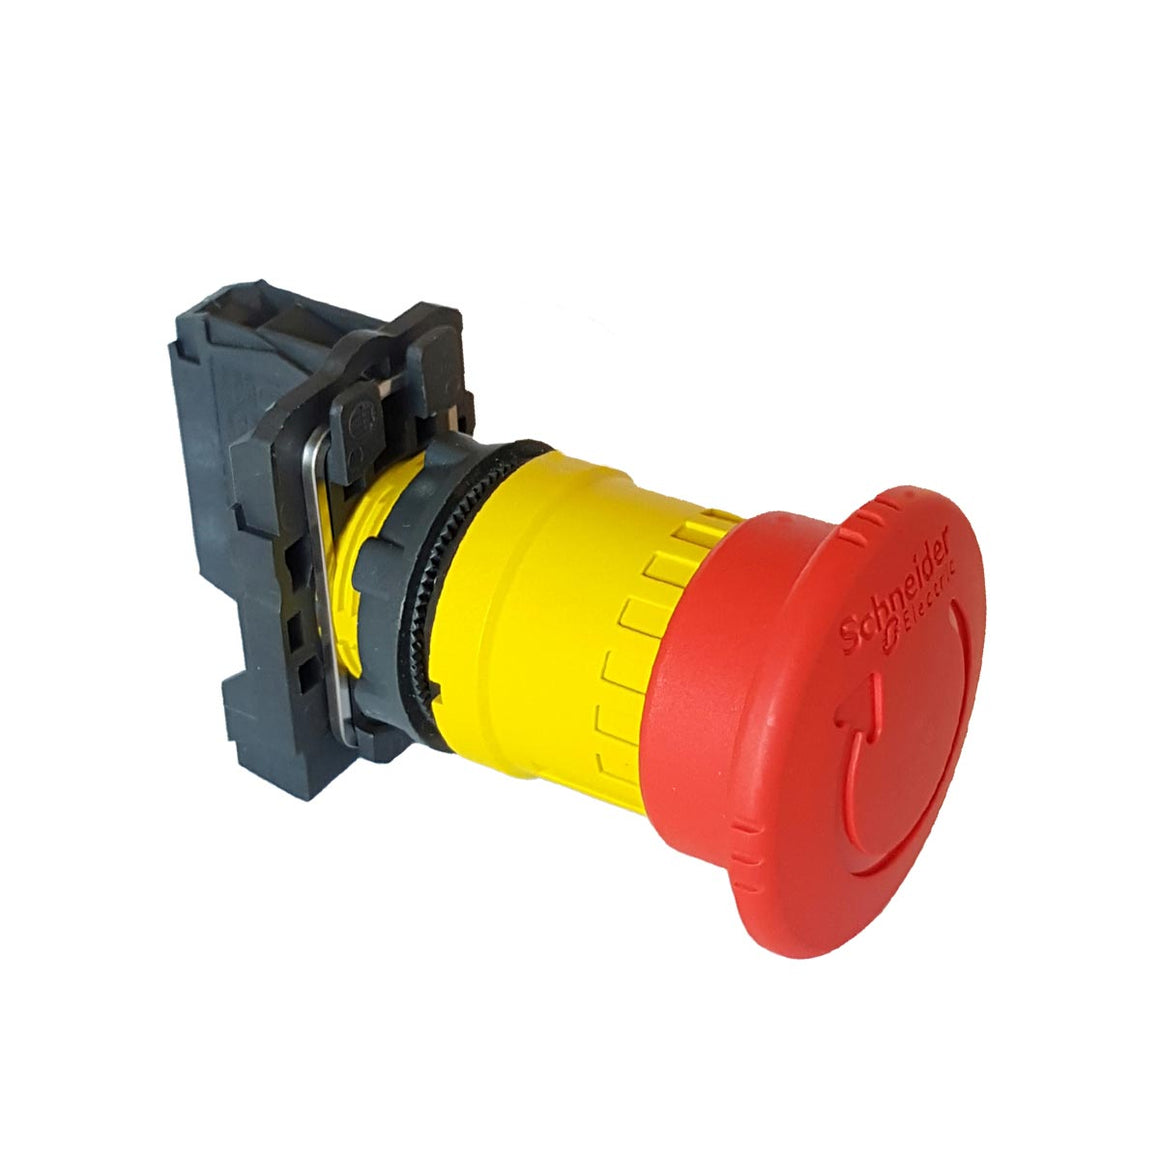 Emergency Stop Button and Switch - Underpinner Spares